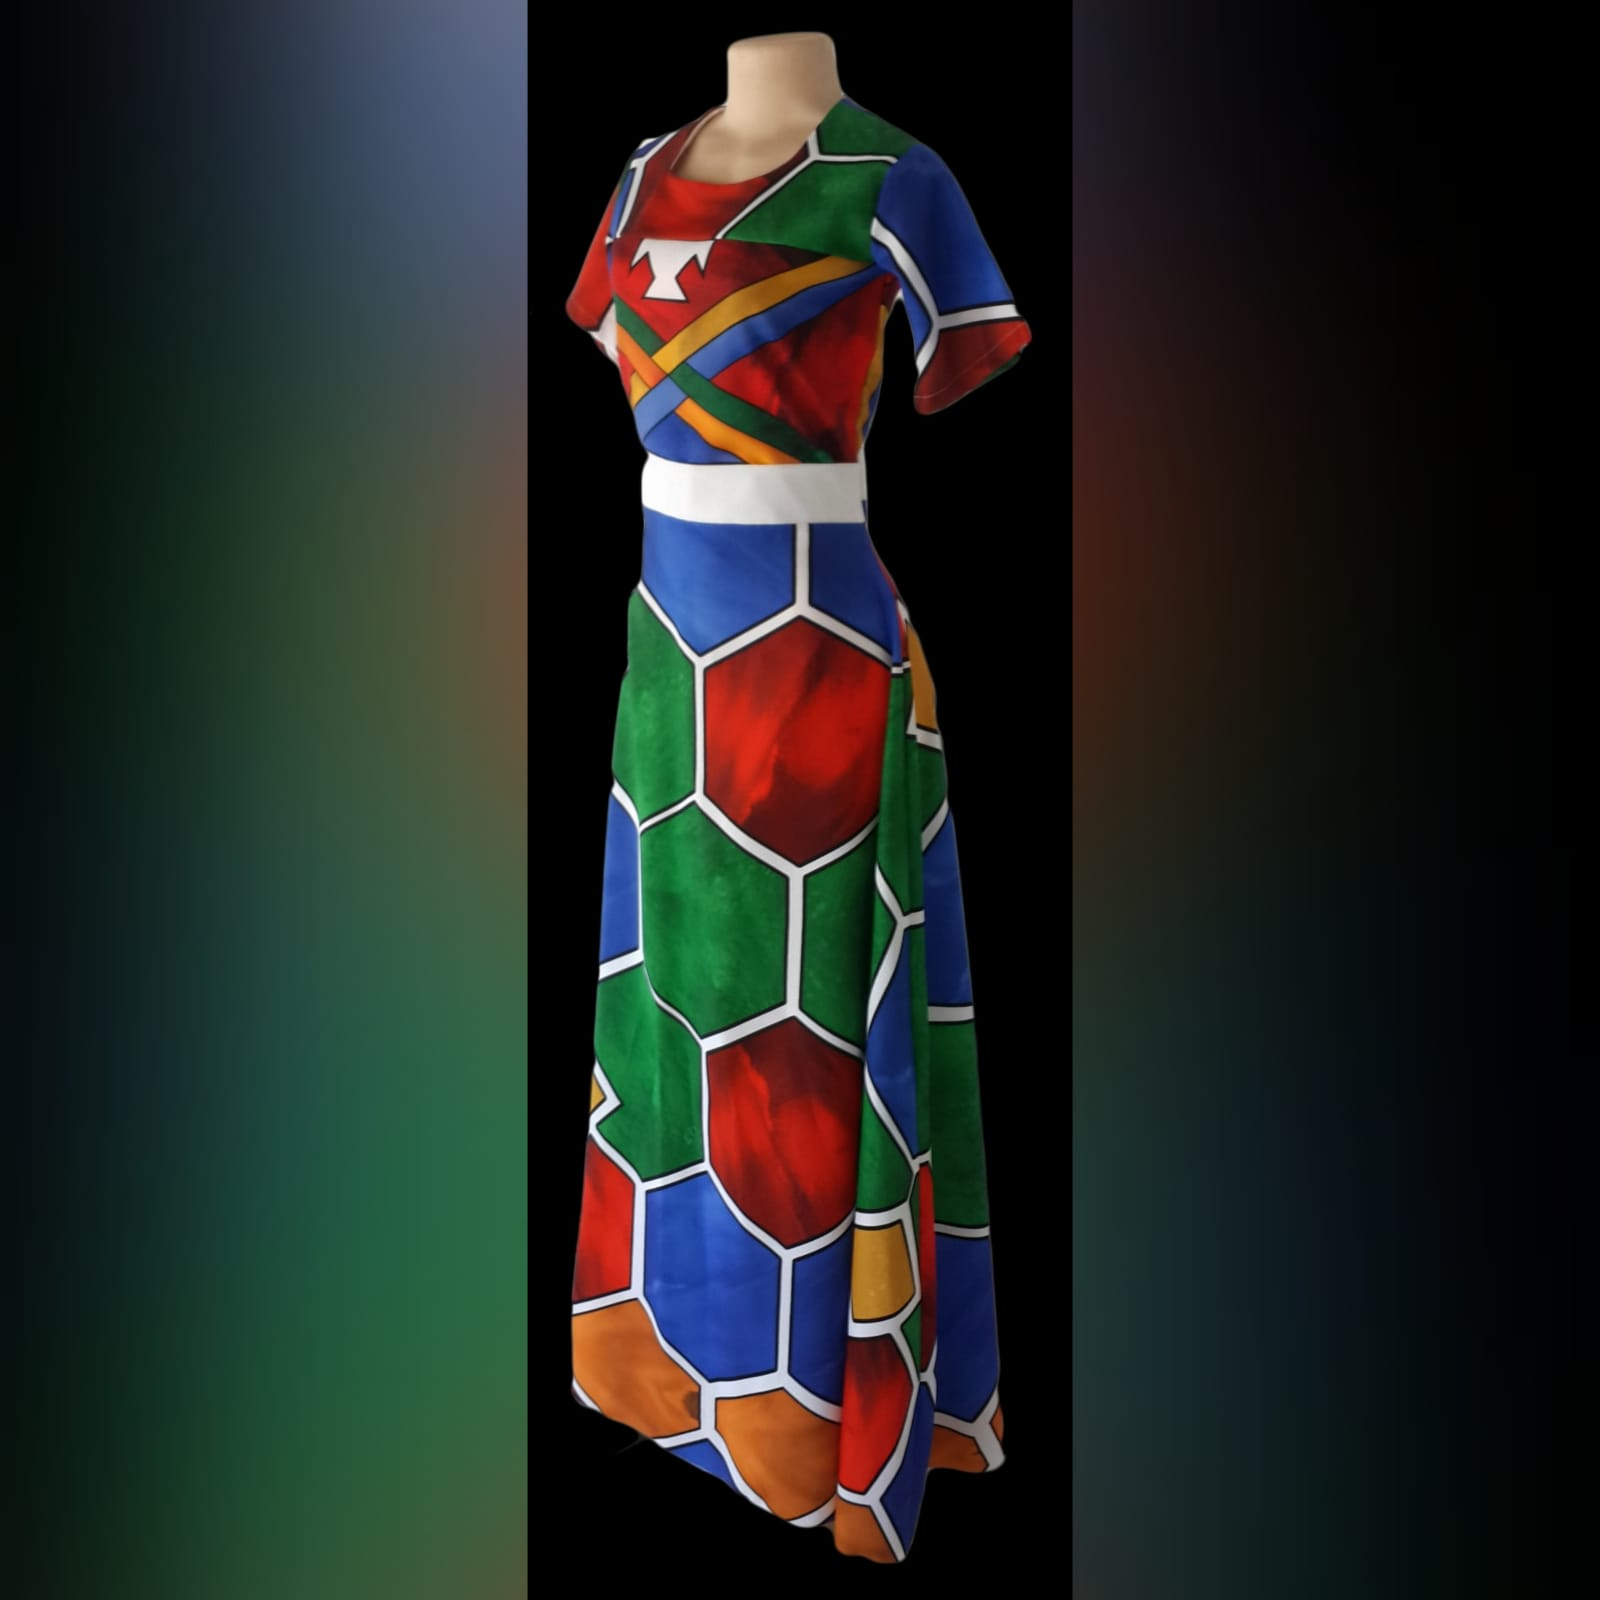 Ndebele empire fit dress with matching shirt 1 custom printed ndebele empire fit, long dress with a white under bust belt with men's matching shirt.